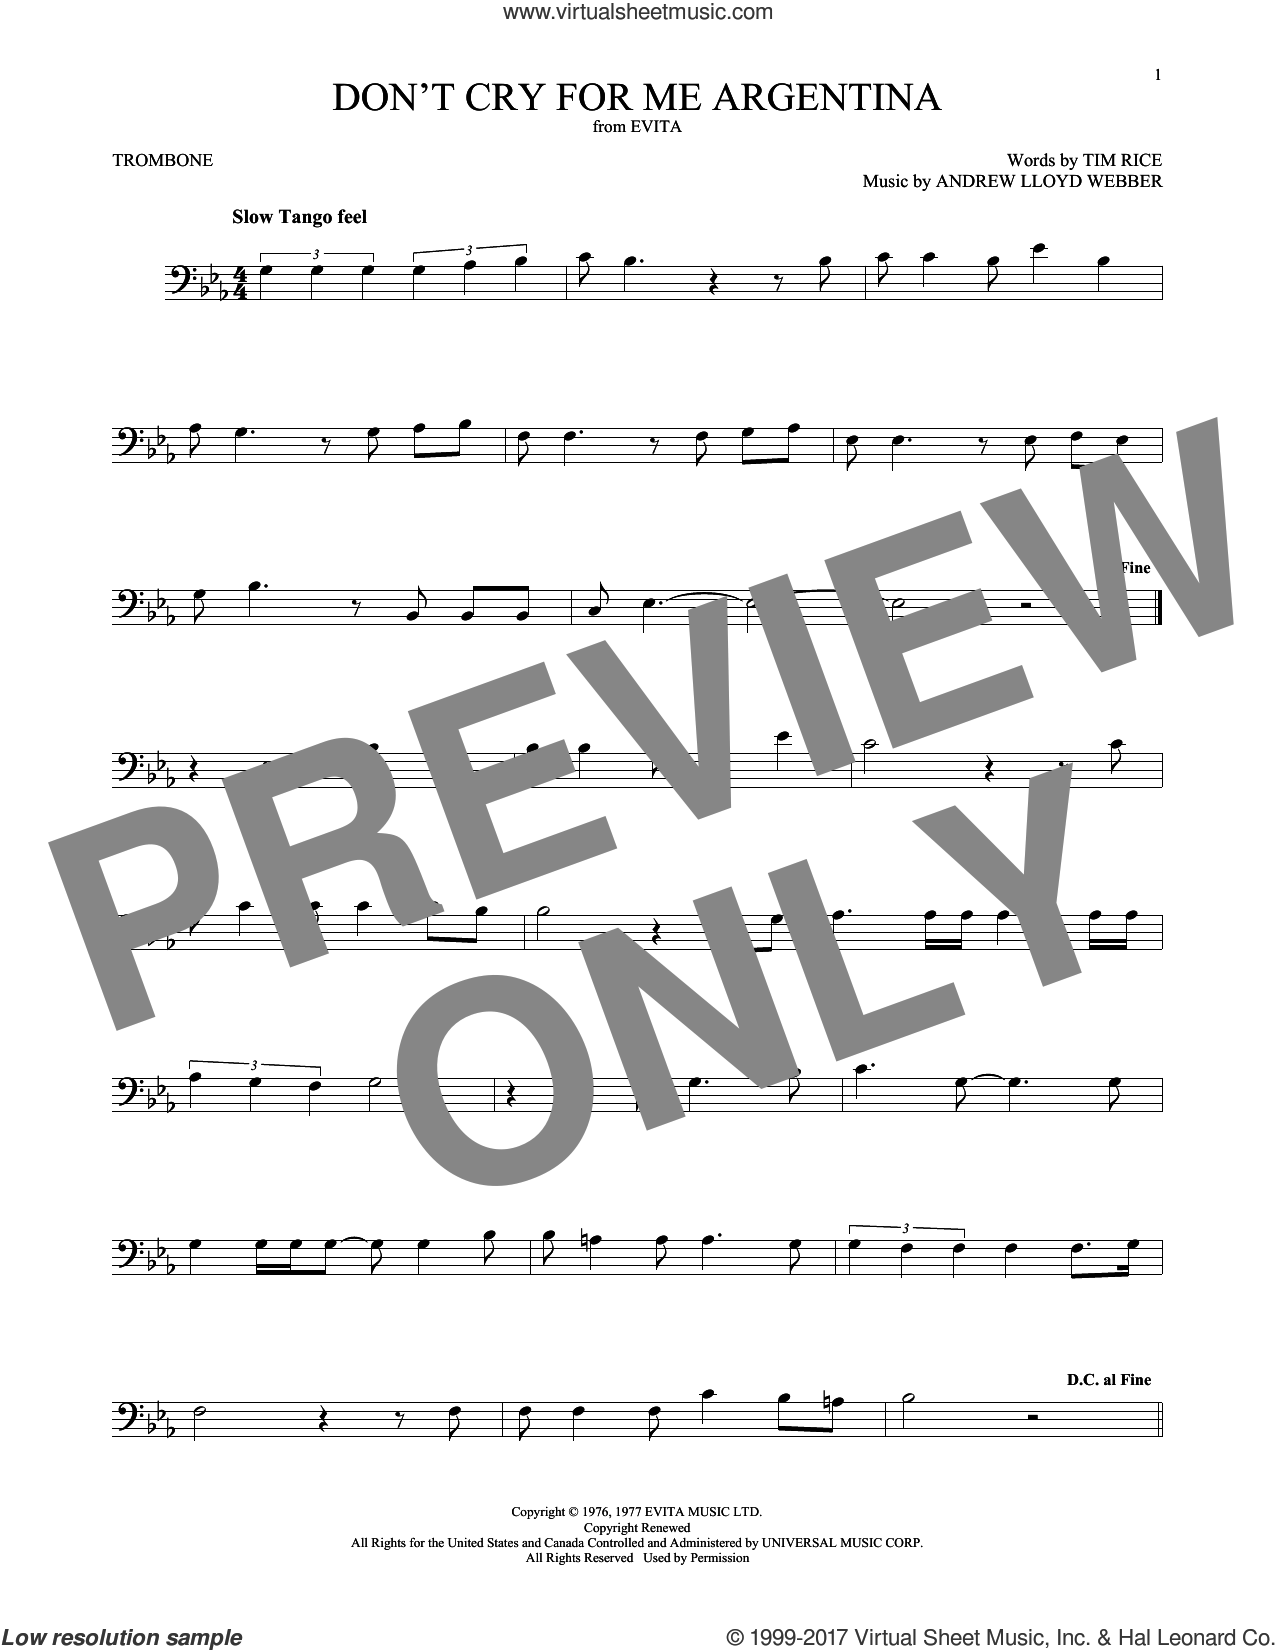 Don't Cry For Me Argentina sheet music for trombone solo by Andrew Lloyd Webber, Festival, Madonna and Tim Rice, intermediate skill level